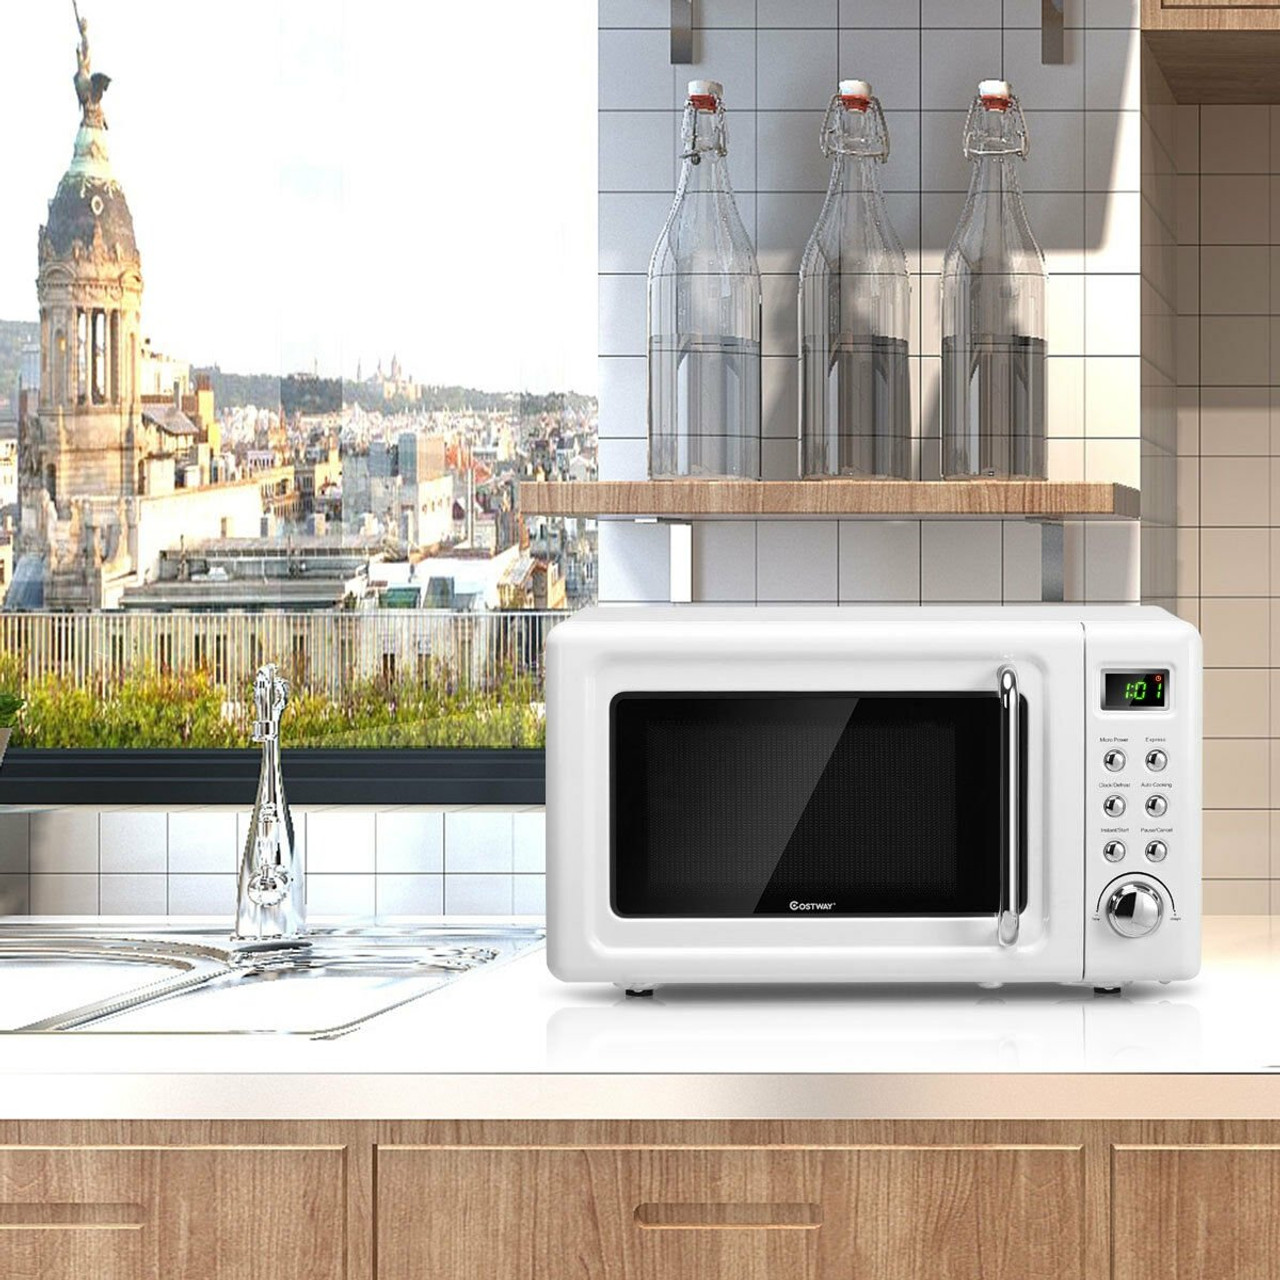 700w glass turntable retro countertop microwave oven white ep23853wh